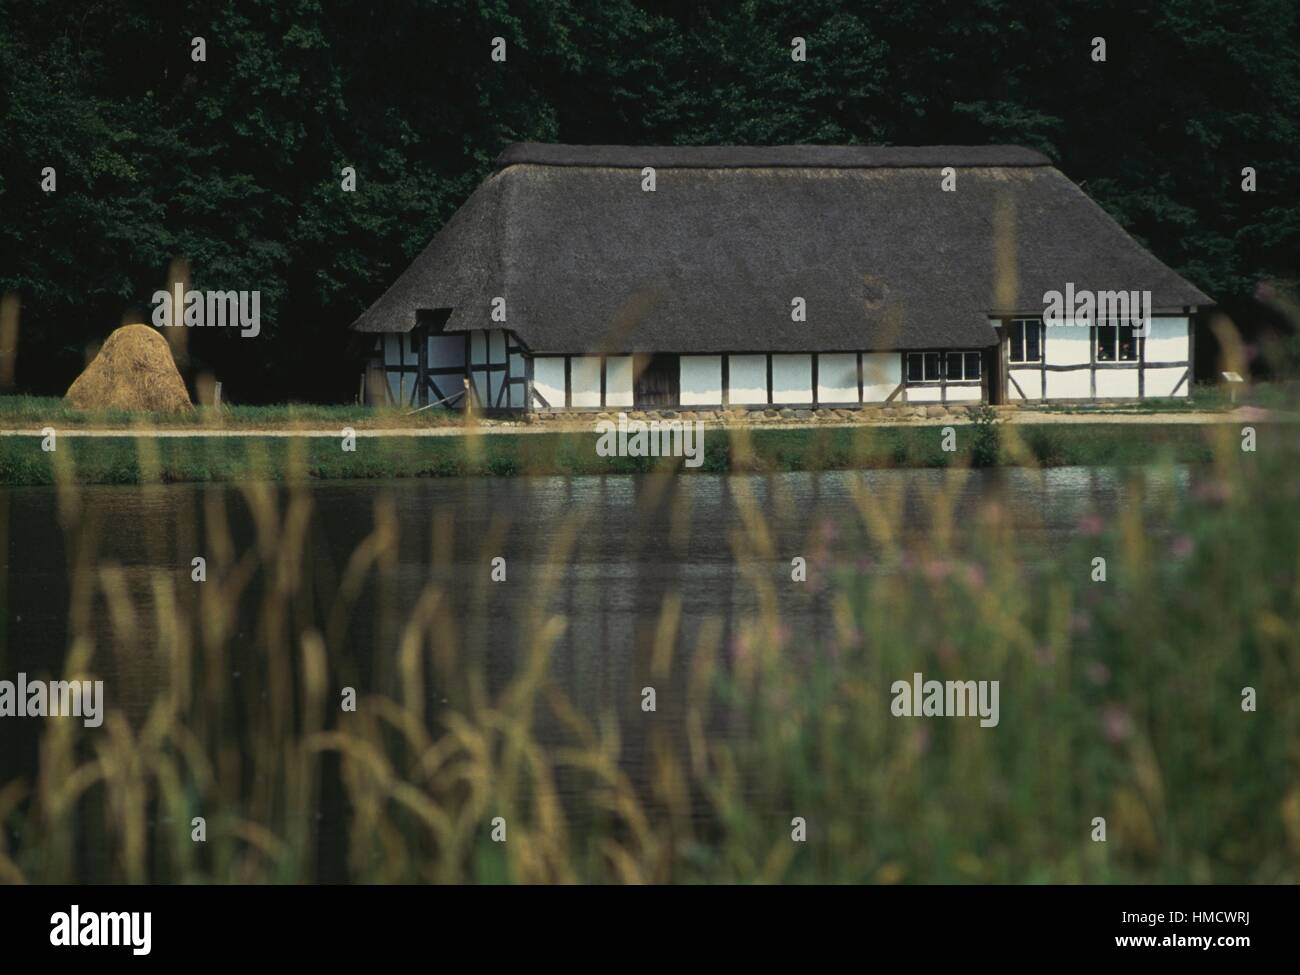 House in front of a body of water, open-air museum in Kiel, Schleswig-Holstein, Germany. - Stock Image